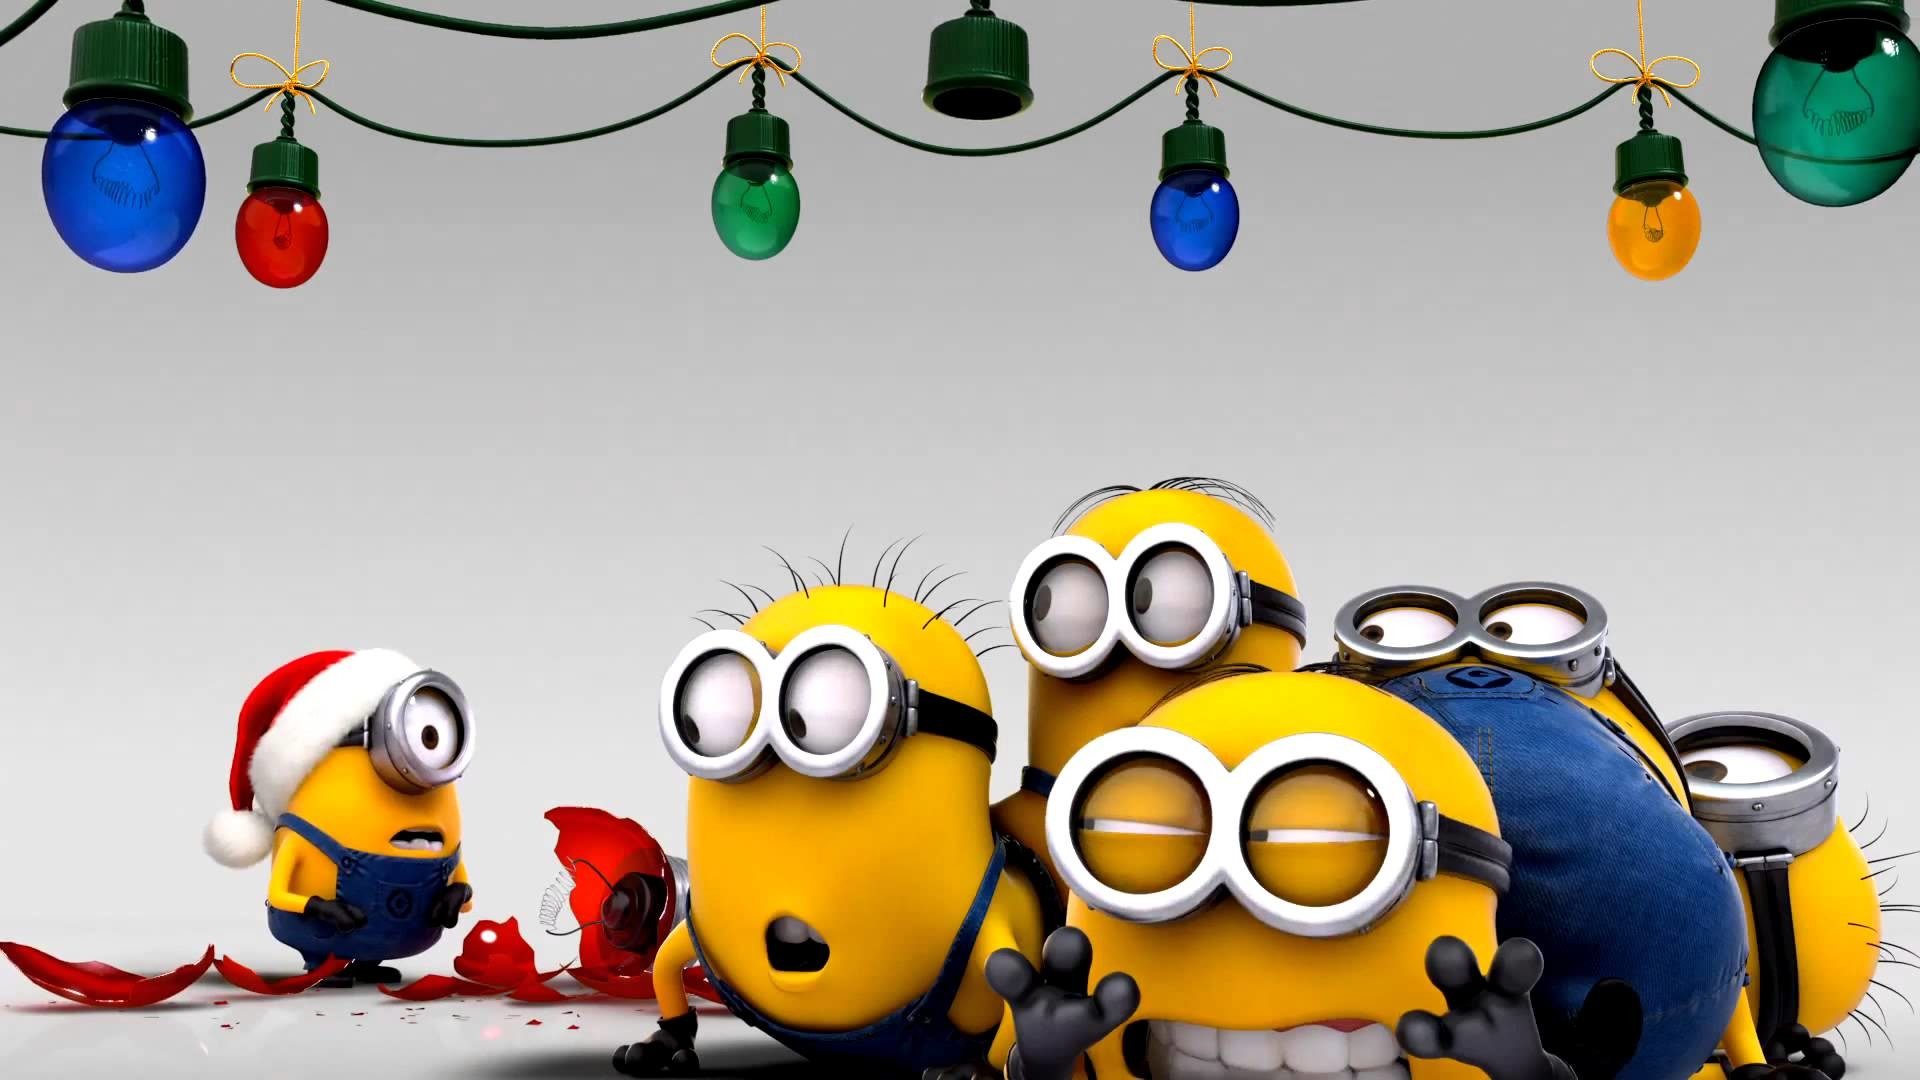 1920x1080 55 best Minions images on Pinterest | Image, The minions and Minion movie